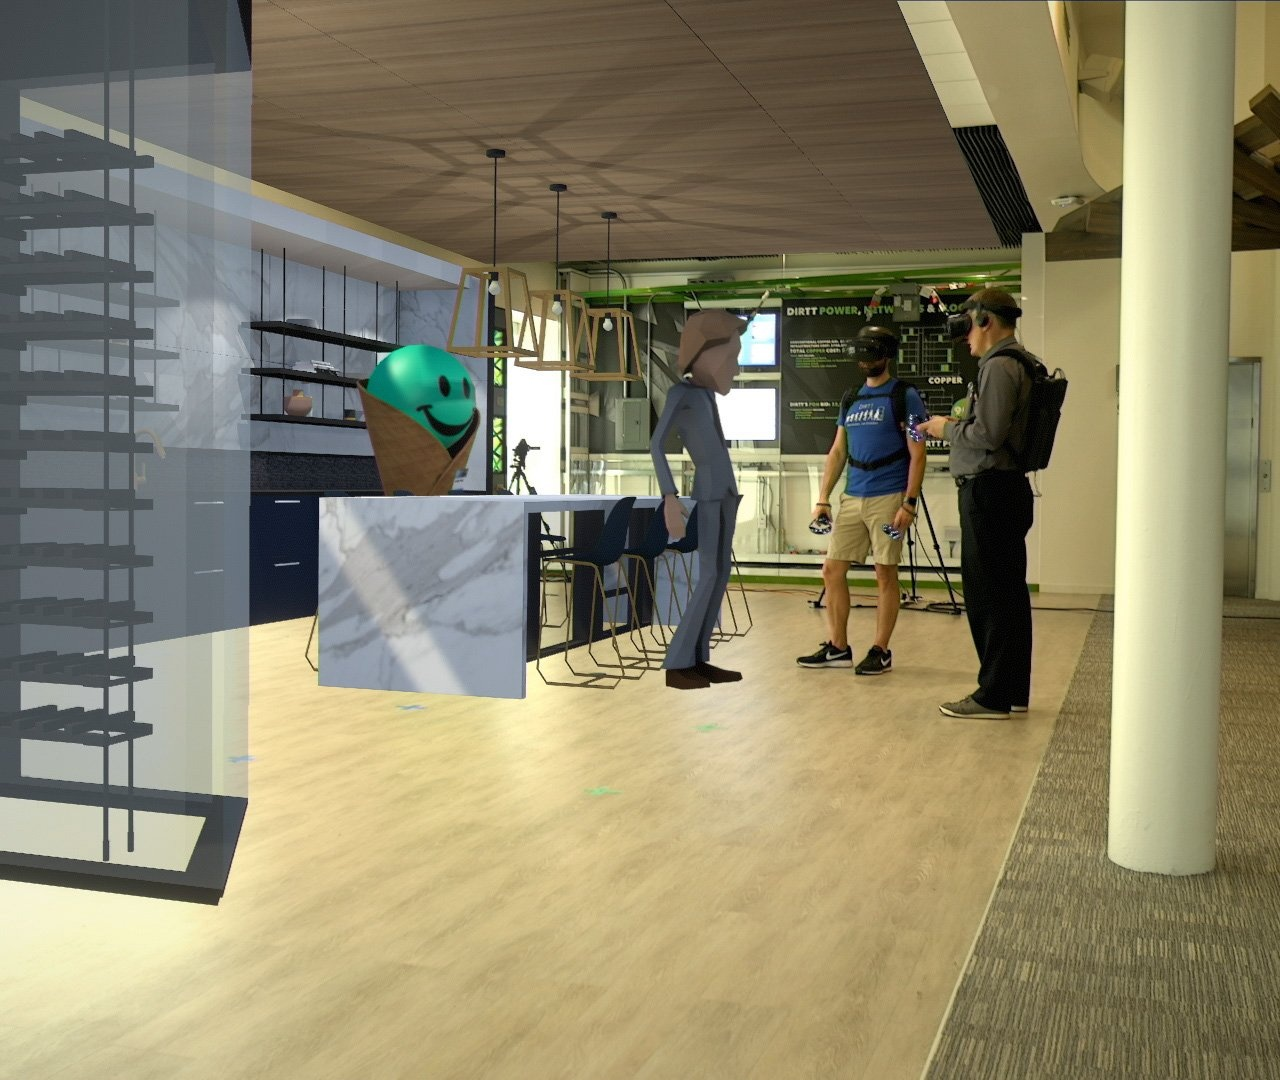 DIRTT's Ice virtual reality technology